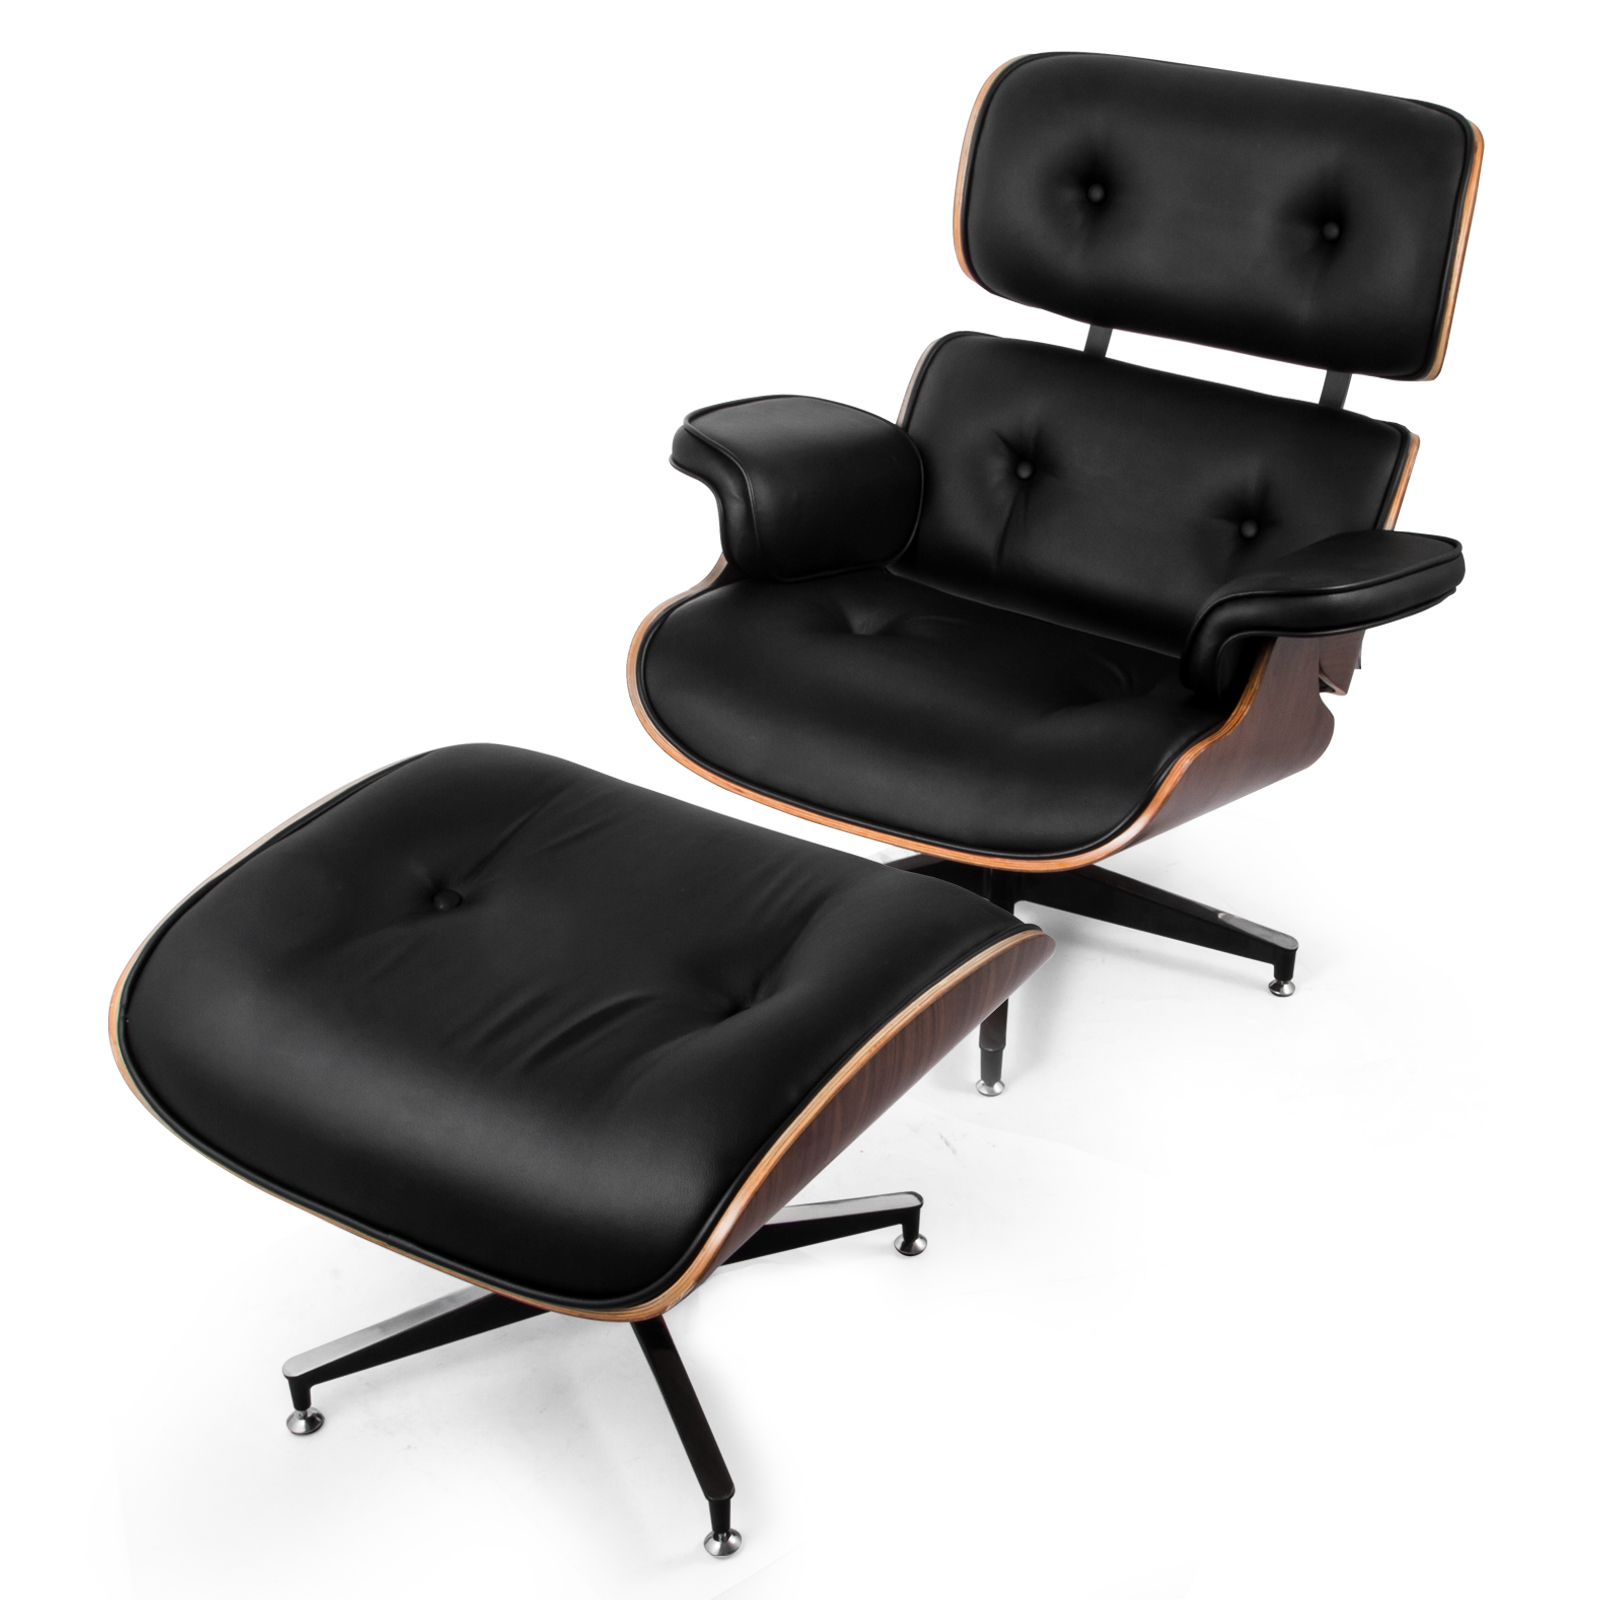 Eames Chair Replica Ebay Details About New Eames Classic Replica Lounge Chair Ottoman Milan Direct Armchairs